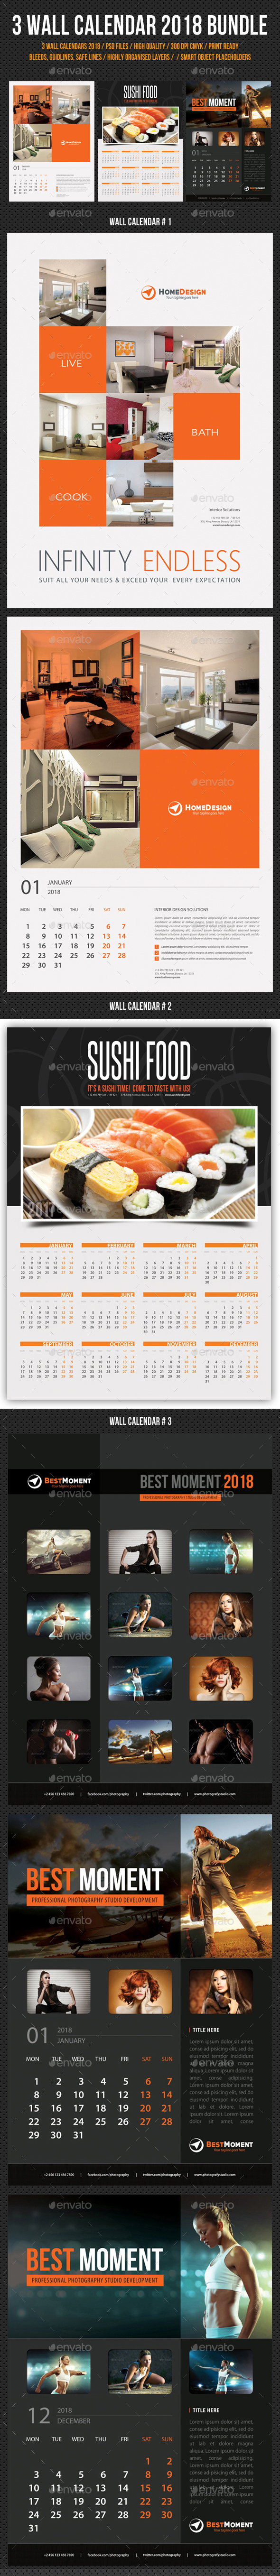 3 in 1 Wall Calendar 2018 Bundle V06